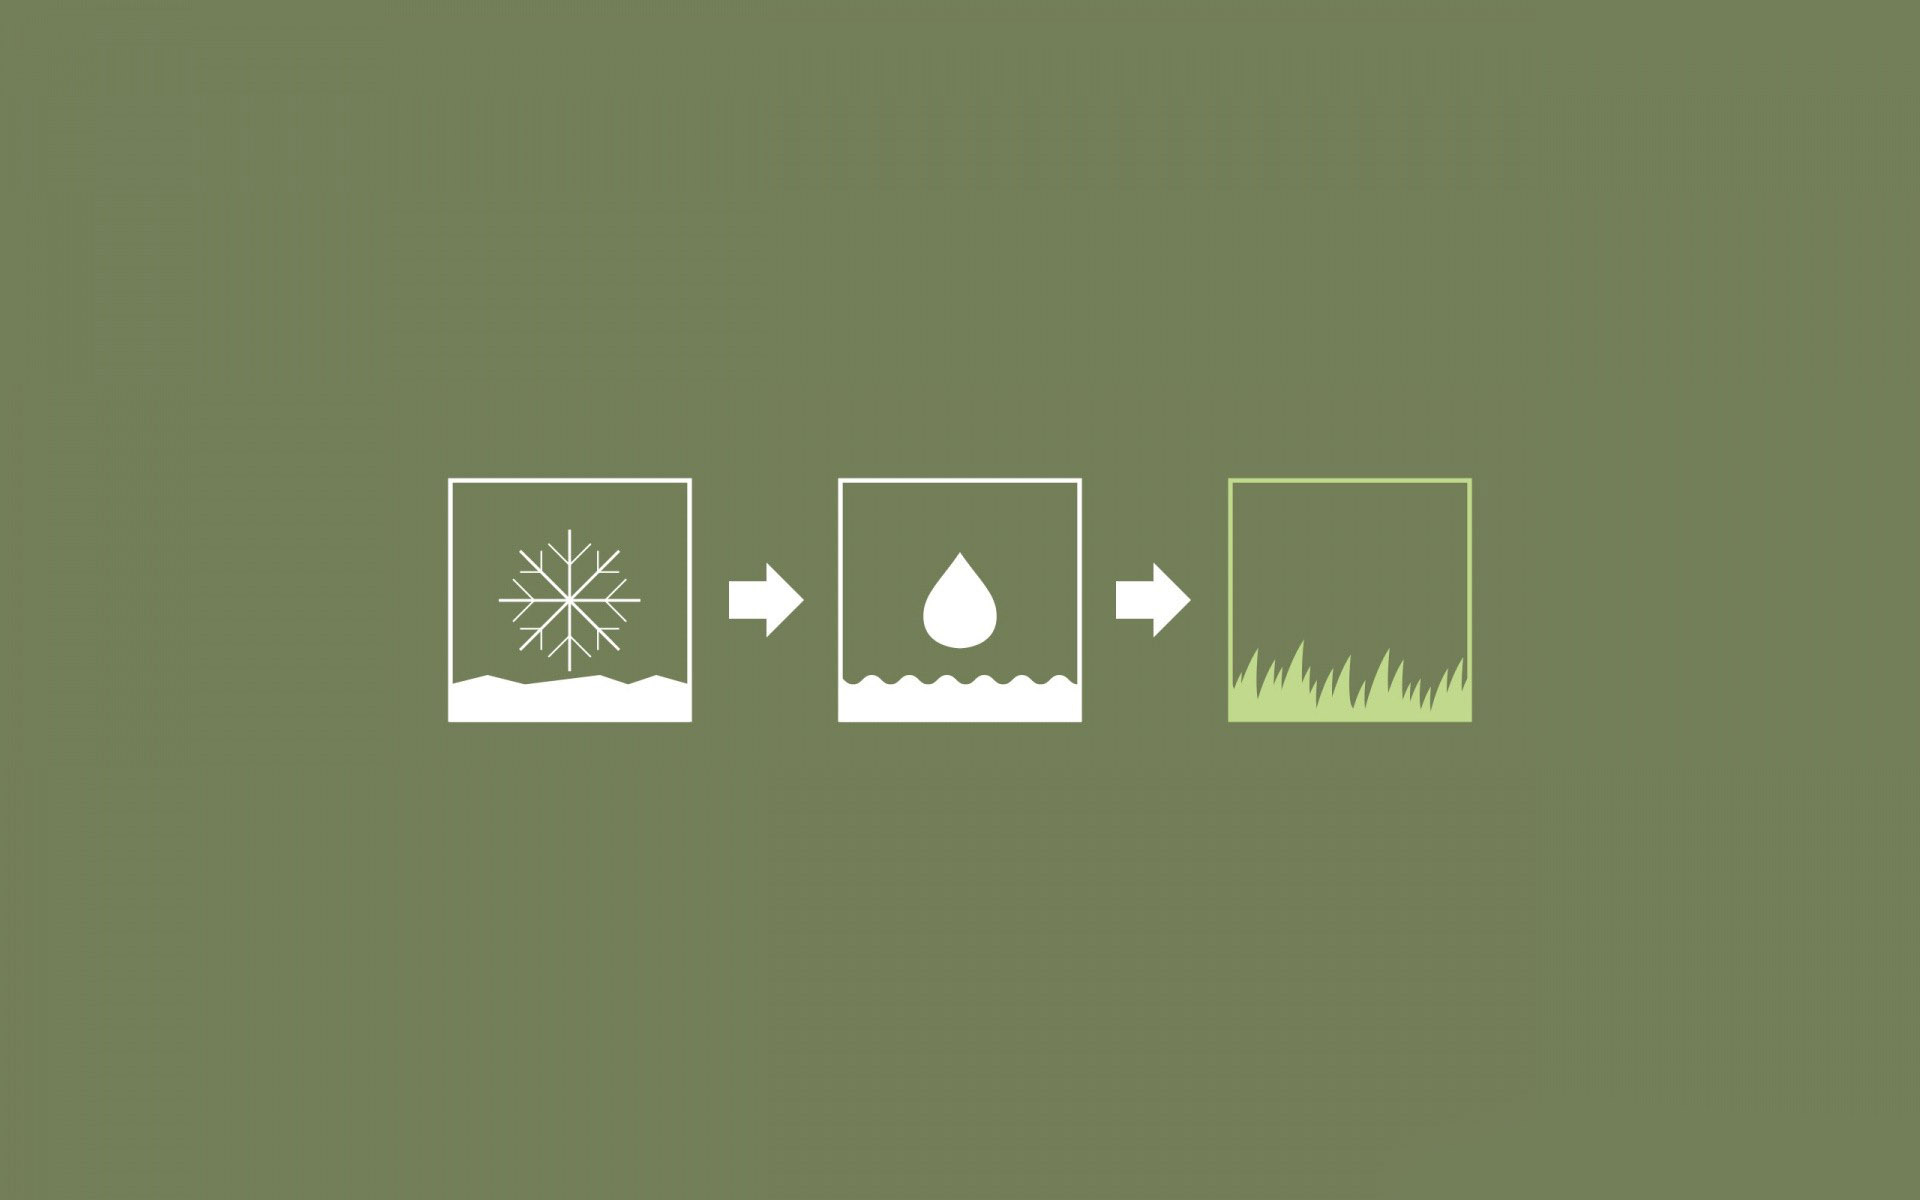 Snow, rain and grass